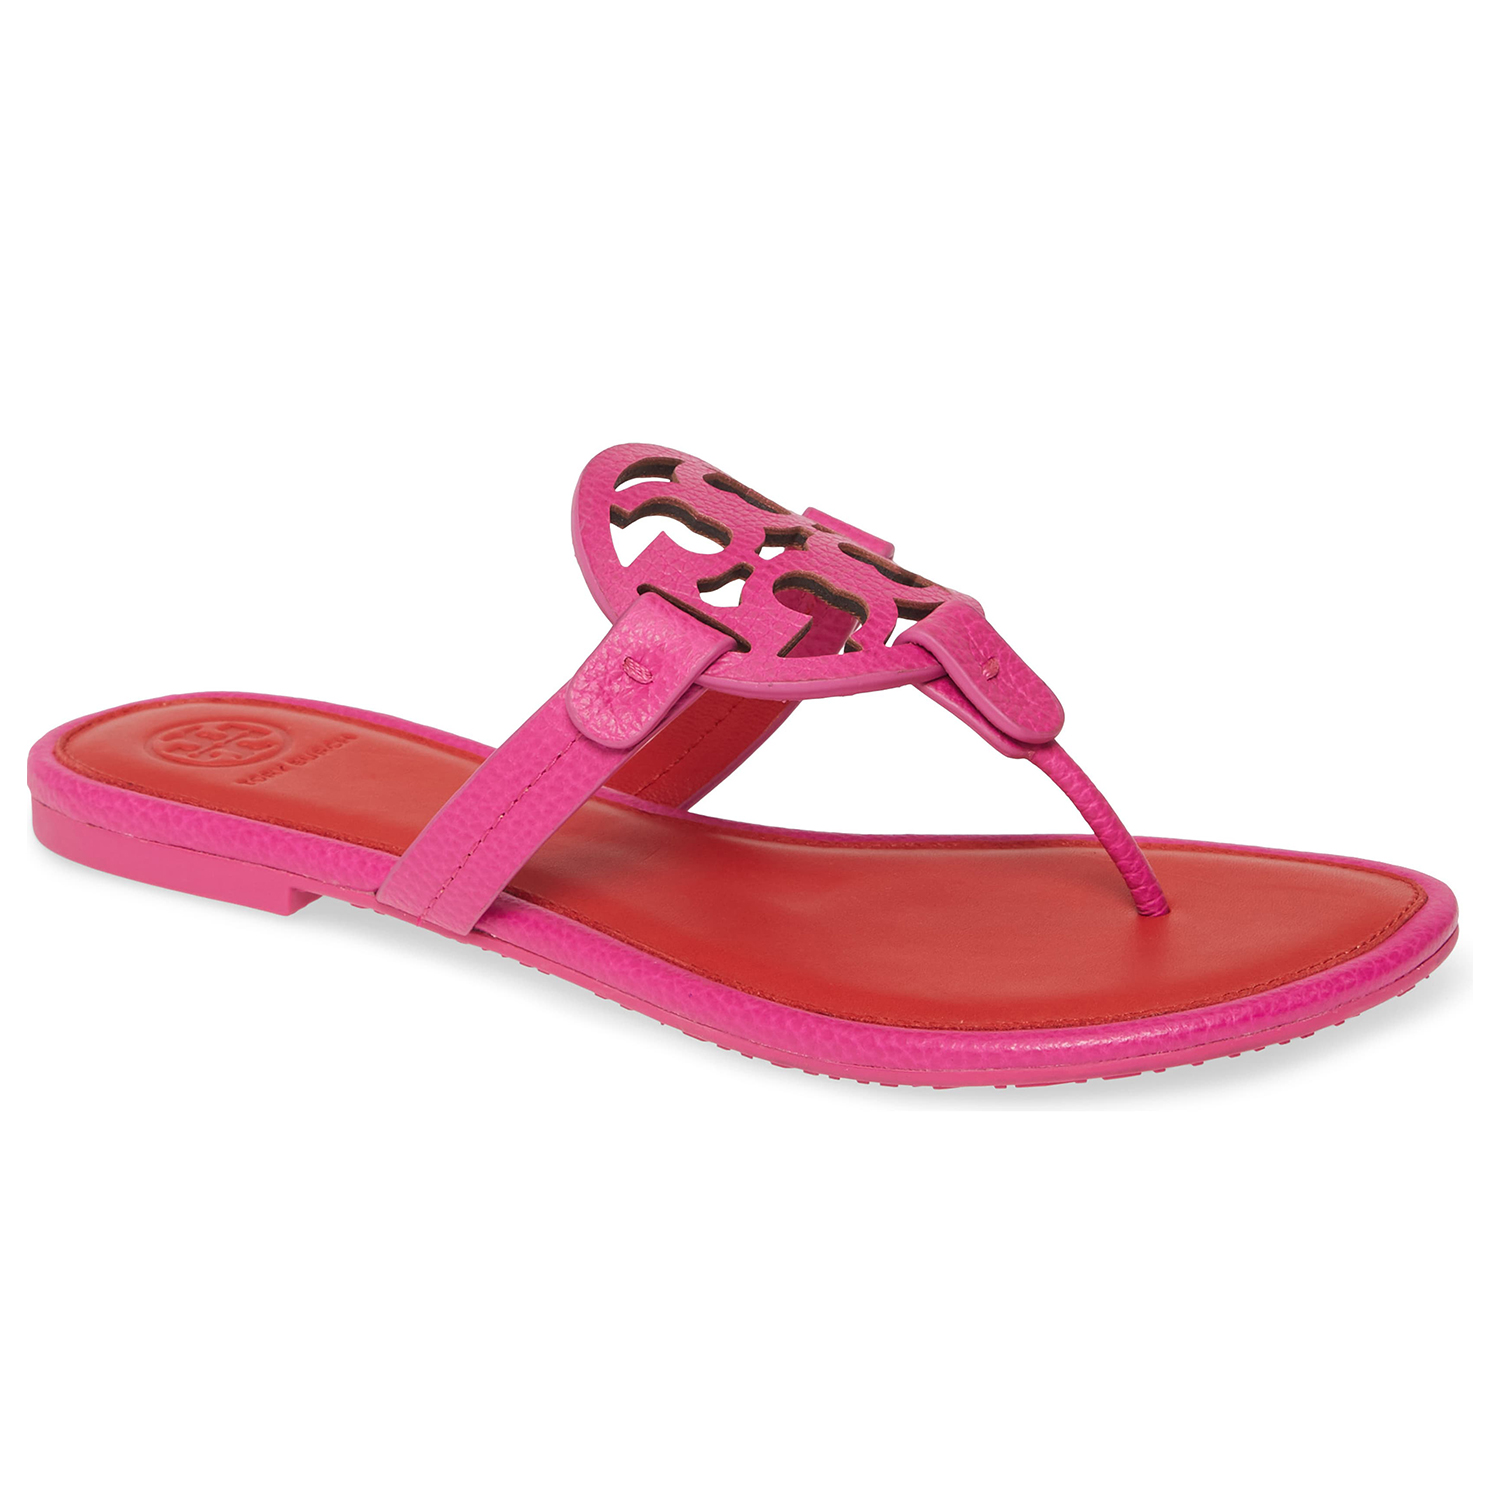 Tory Burch Miller Flip Flop Imperial Pink Brilliant Red